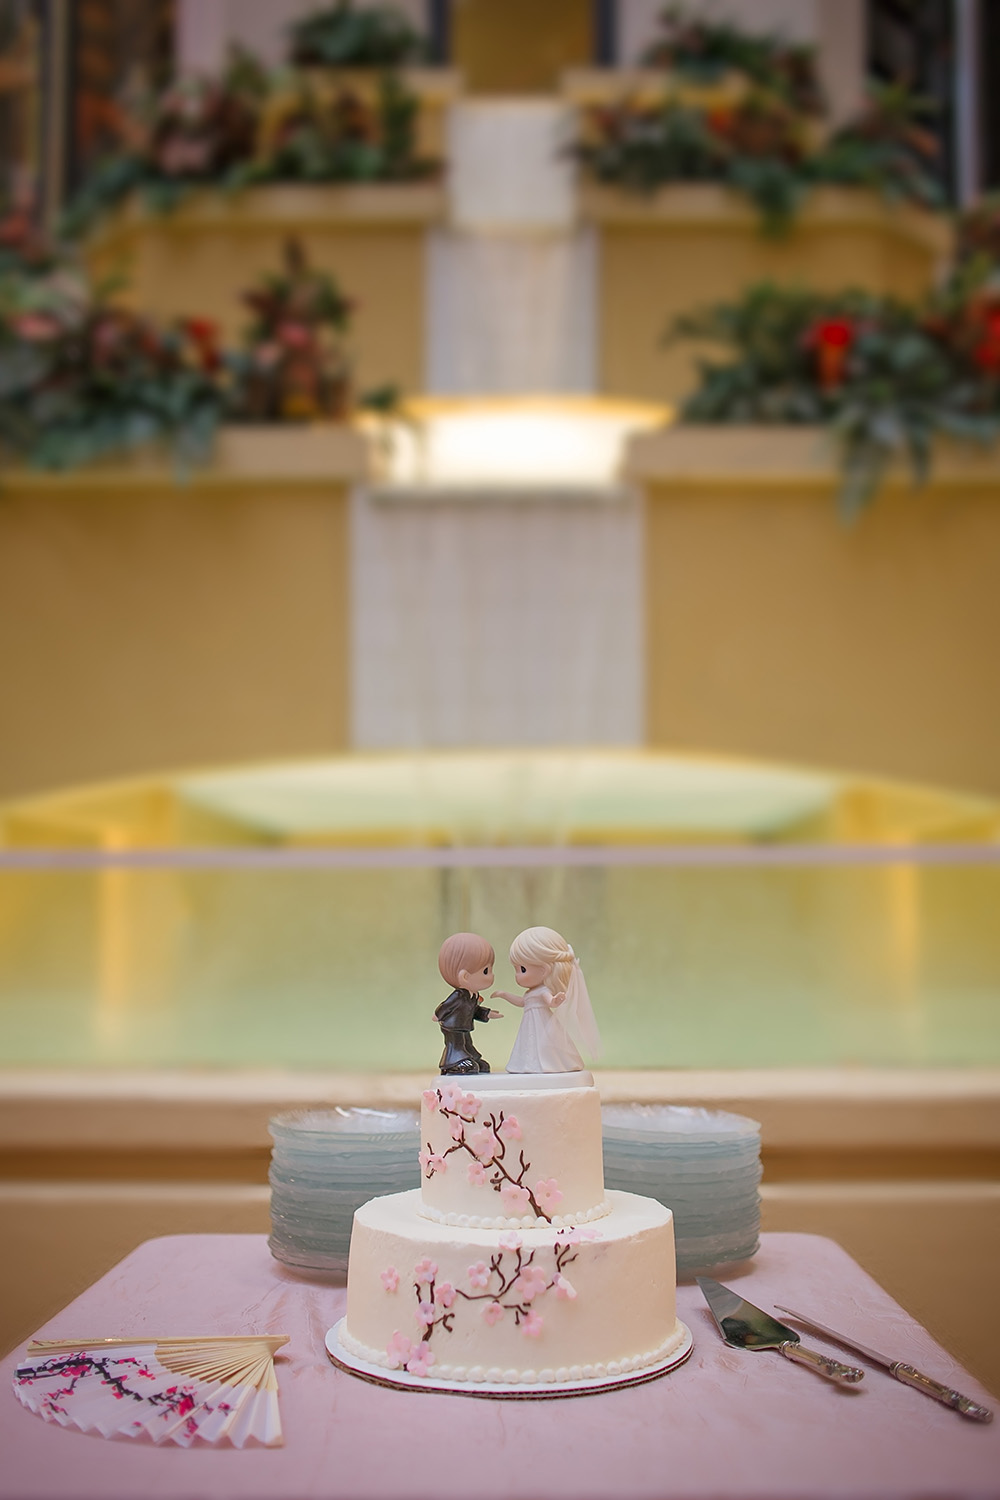 Pink cherry blossoms adorn this wedding cake with a Precious Moments cake topper - Holiday Inn Hotel & Suites Wedding Reception